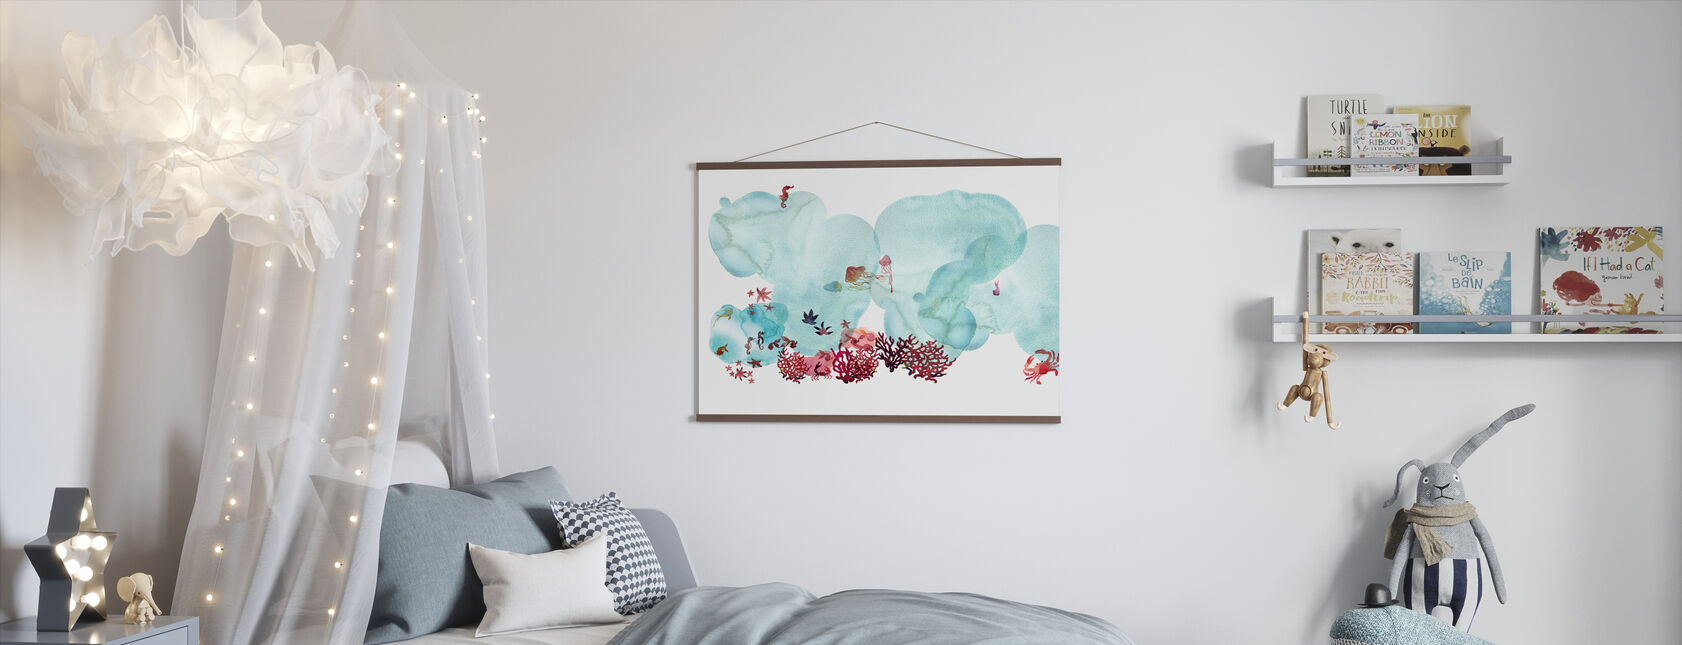 Water Color Coral I - Poster - Kids Room